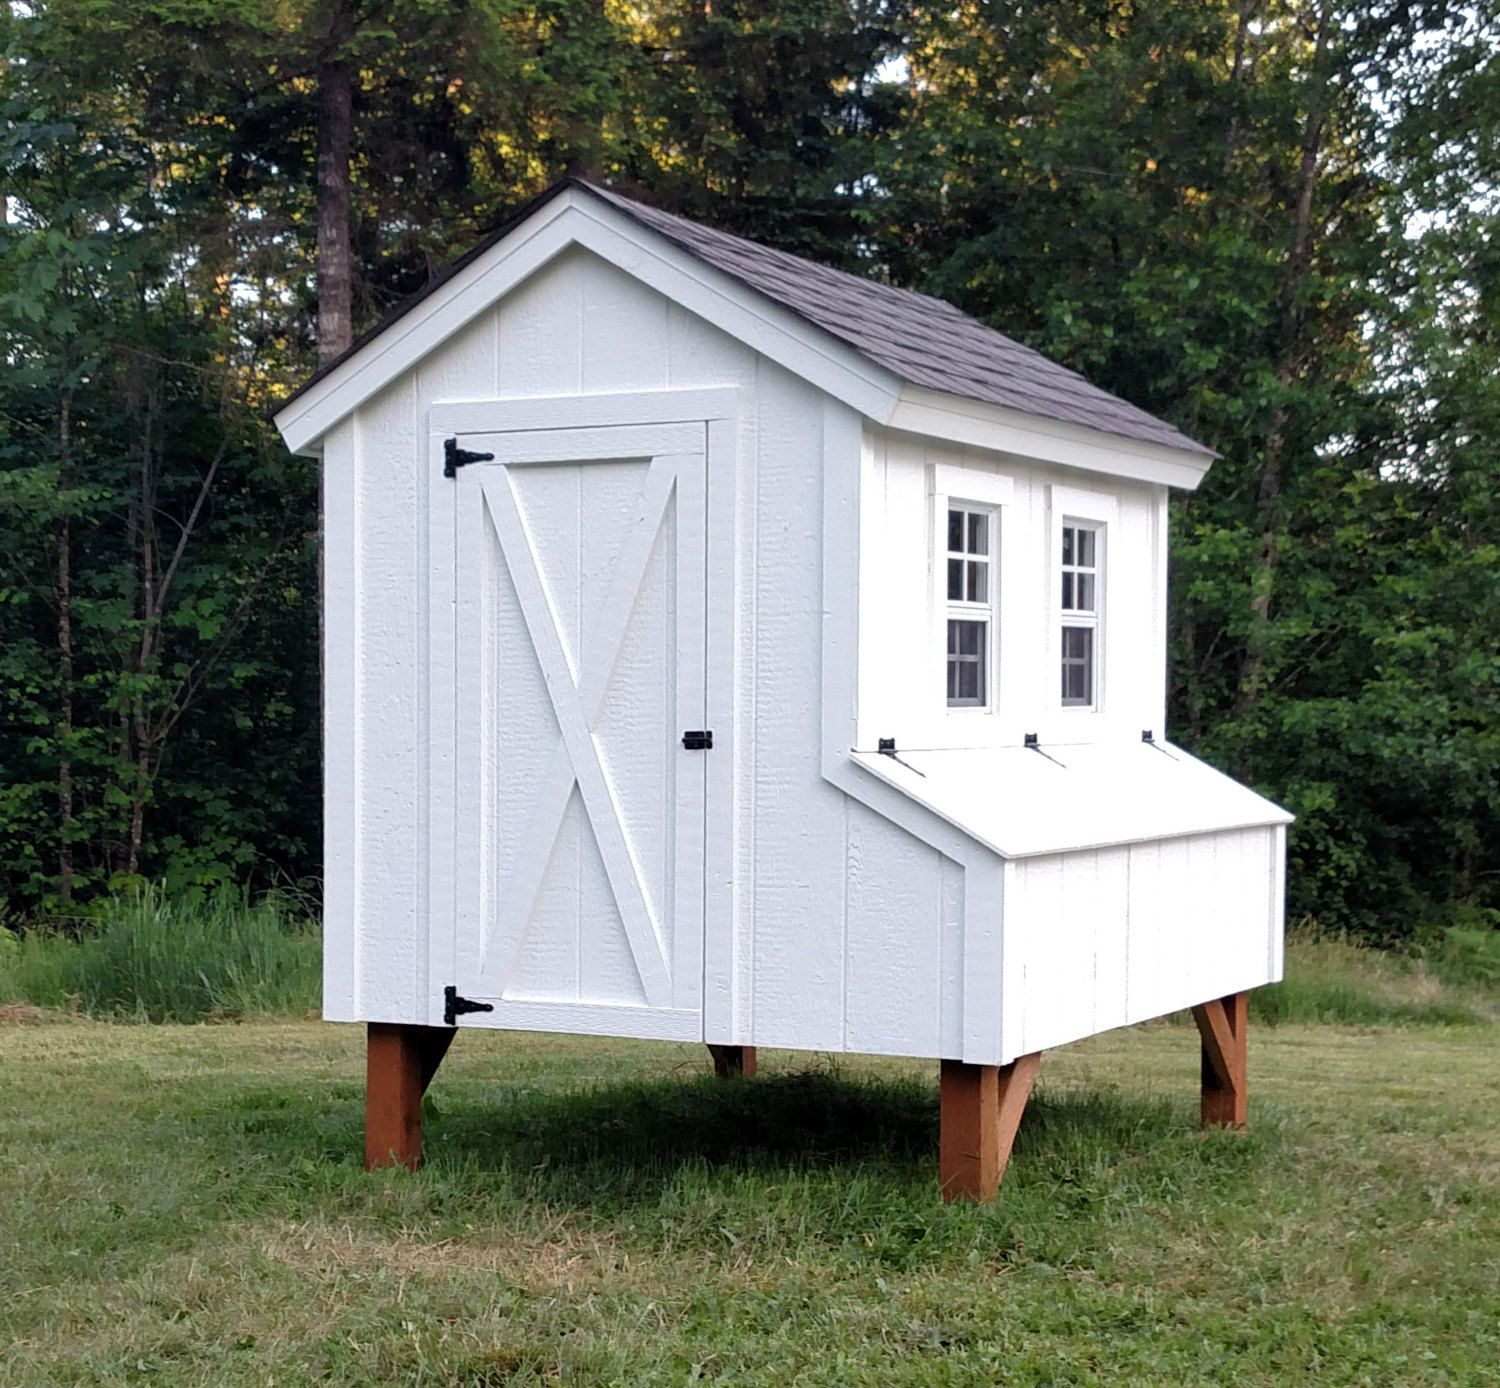 5x6 chicken coop plans easy to follow plans for the